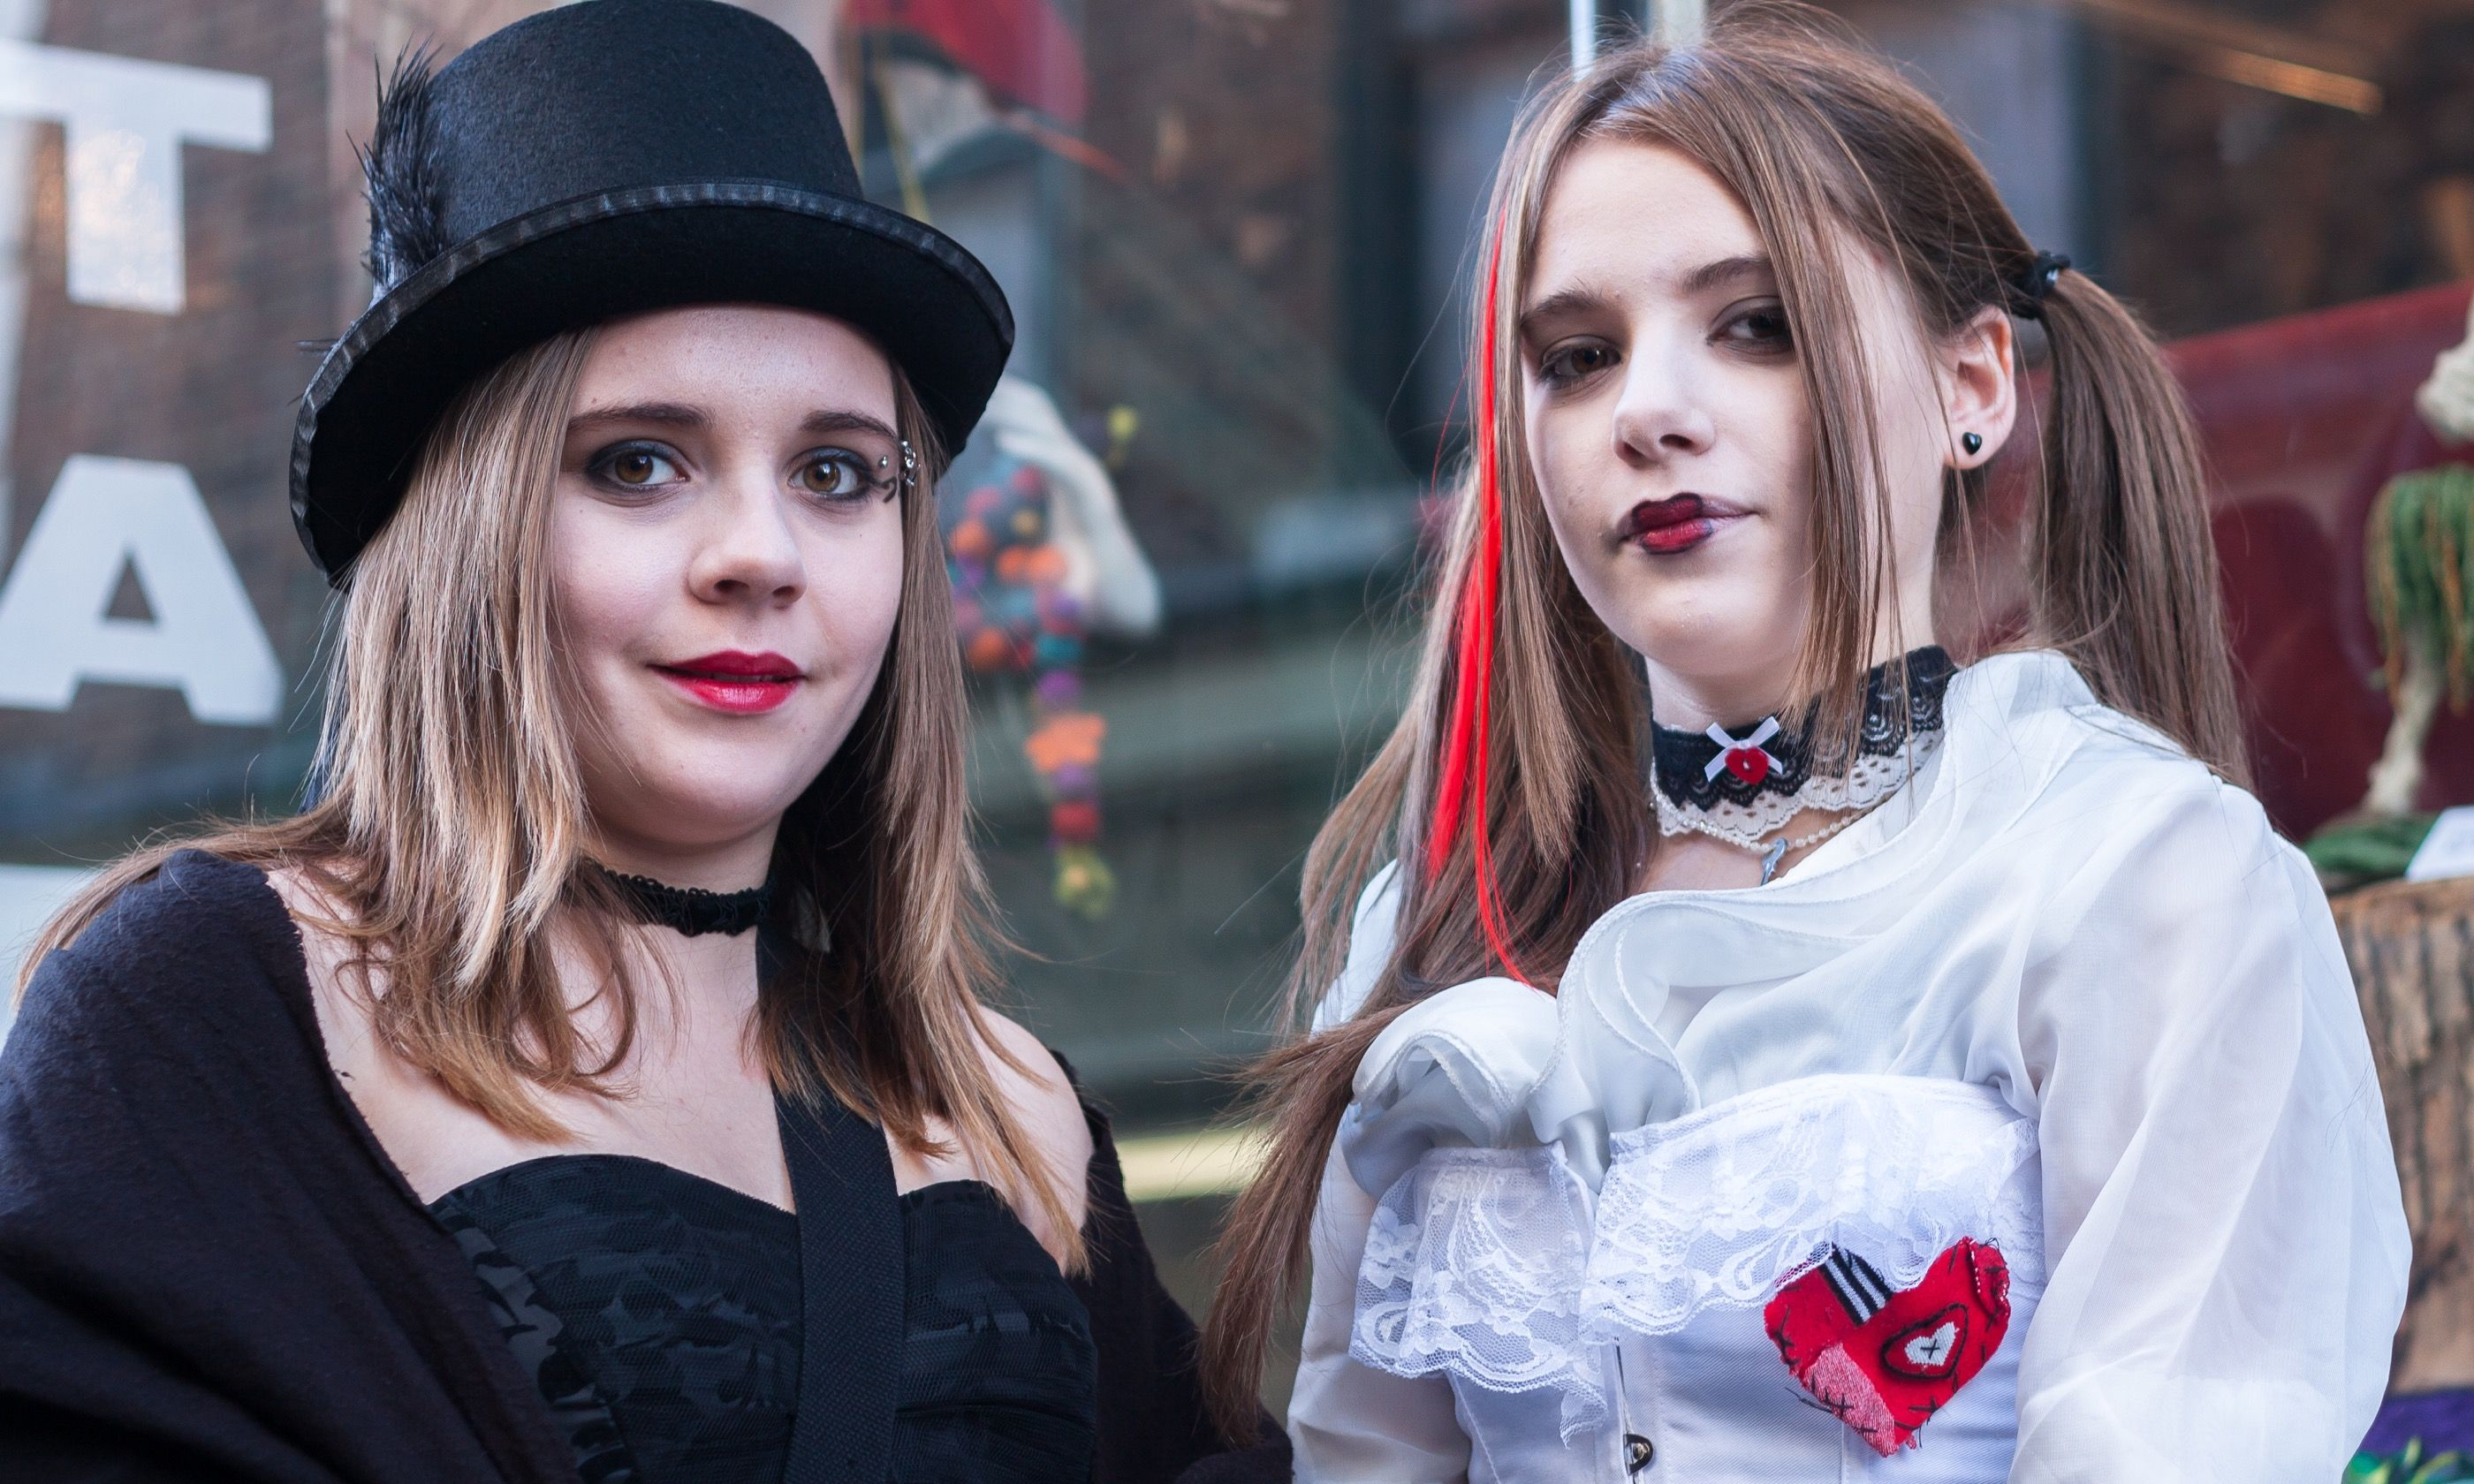 Goth girls, Whitby (Dreamstime)